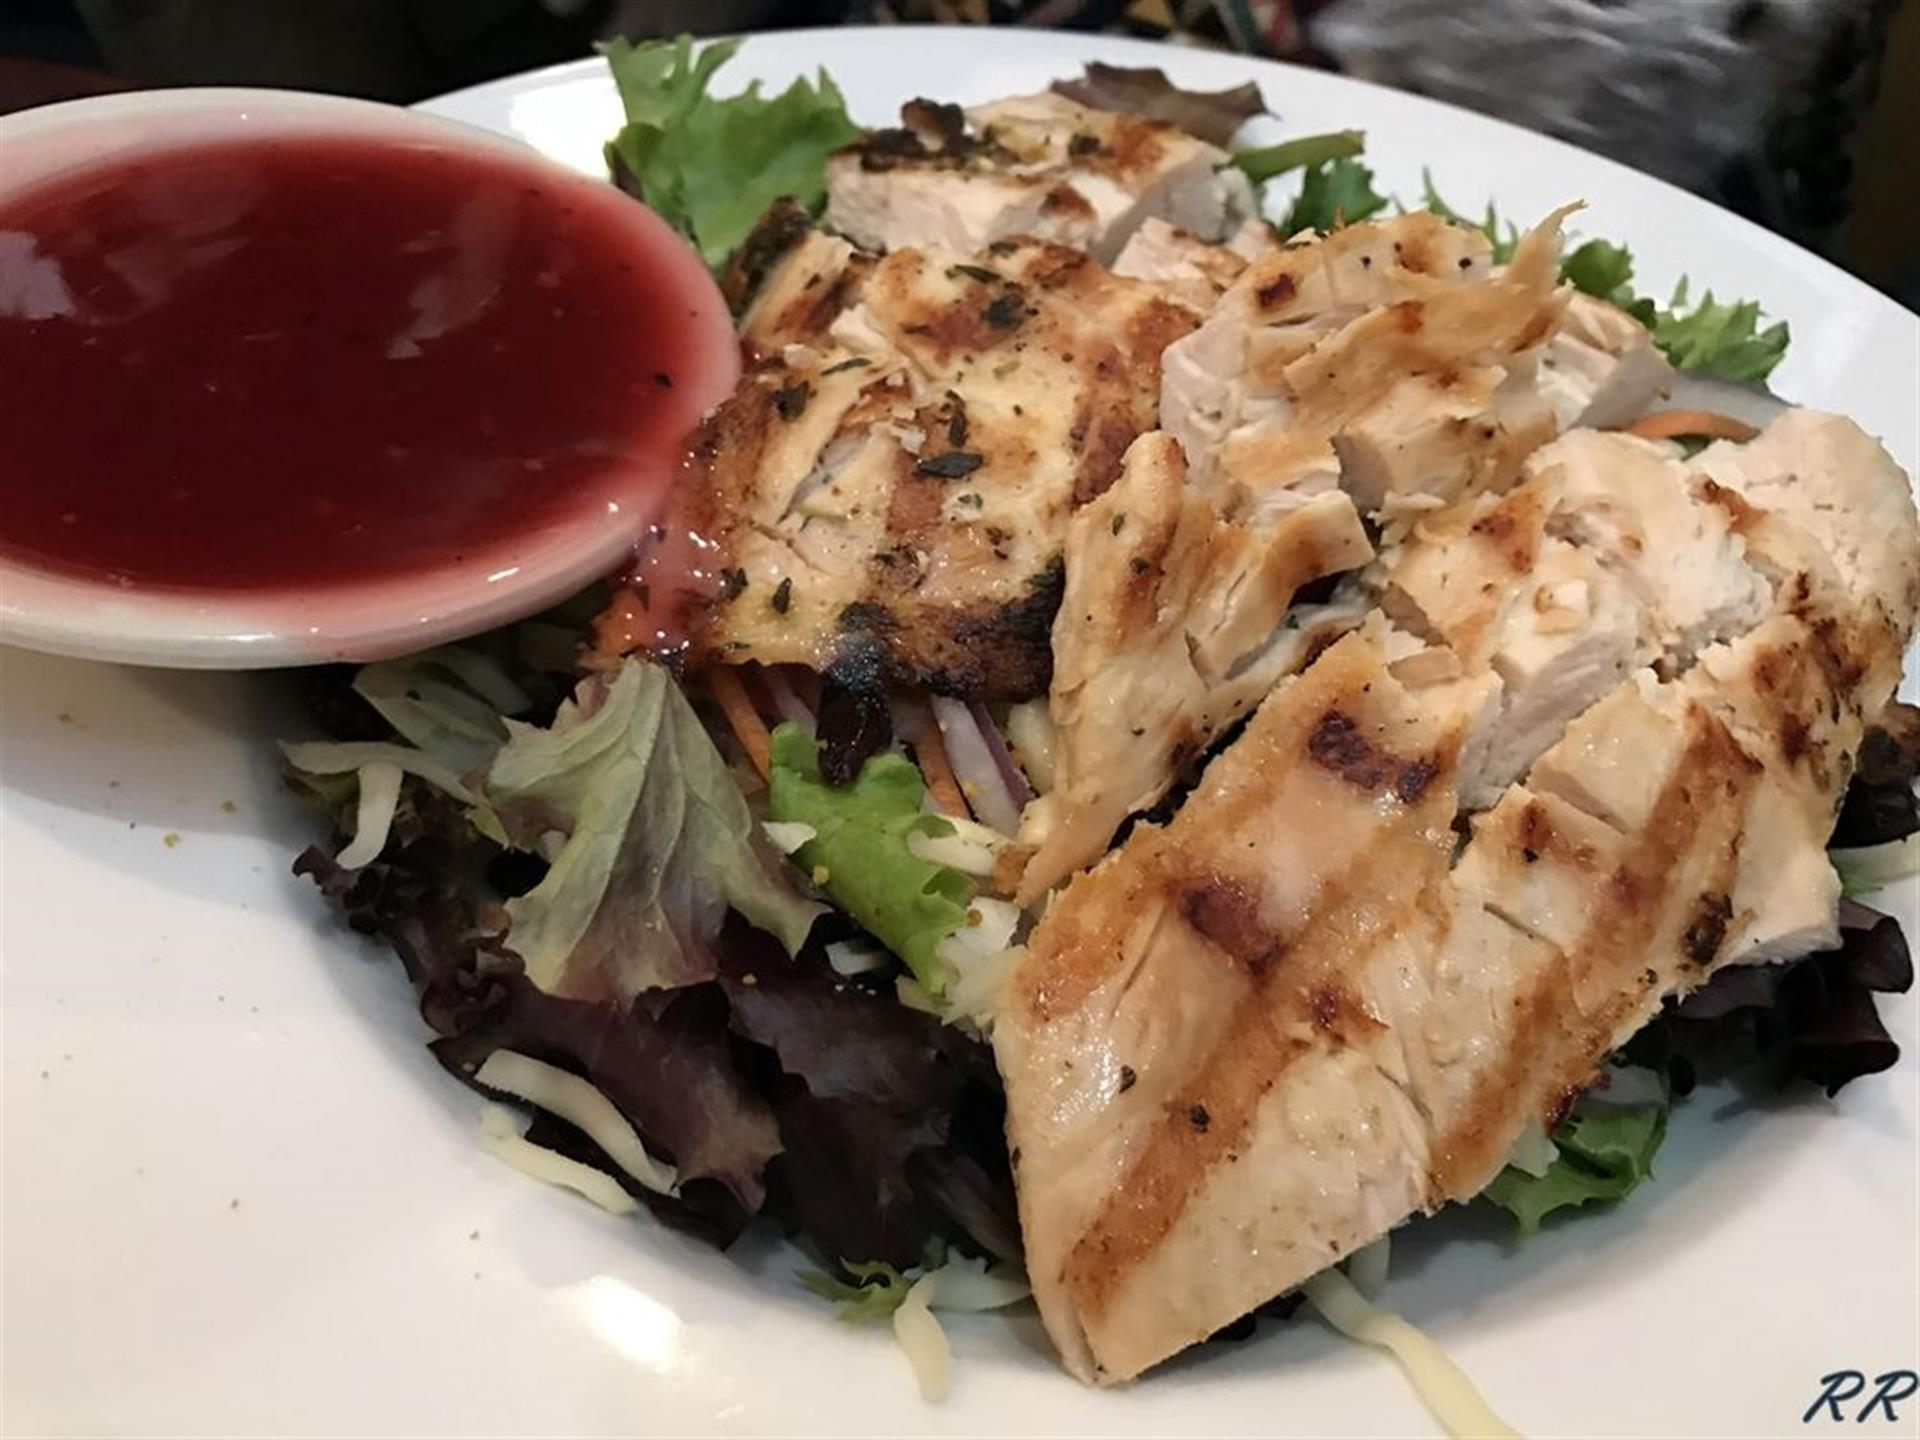 Grilled chicken over lettuce